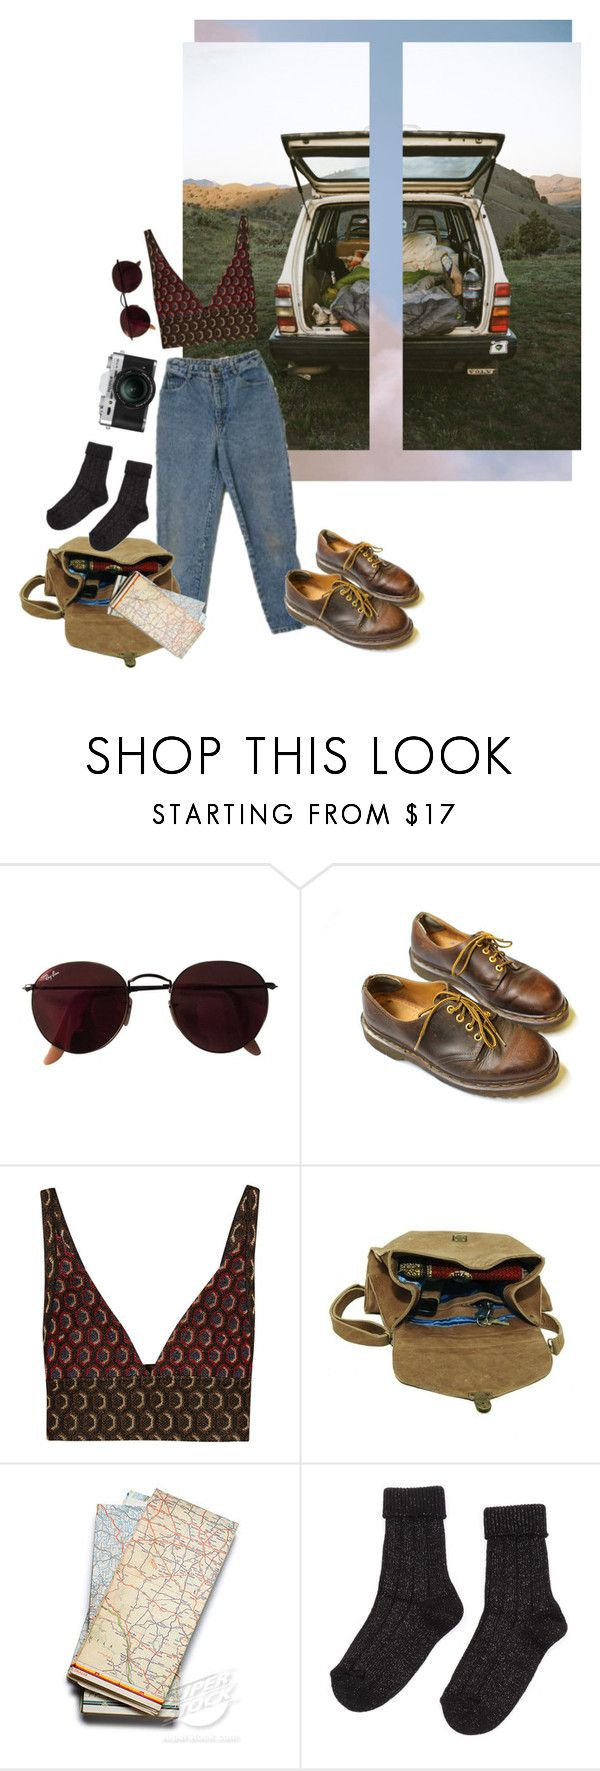 """give or take"" by confuseme ❤ liked on Polyvore featuring Ray-Ban, Dr. Martens, Marni, Maison d'usQ and Fuji"